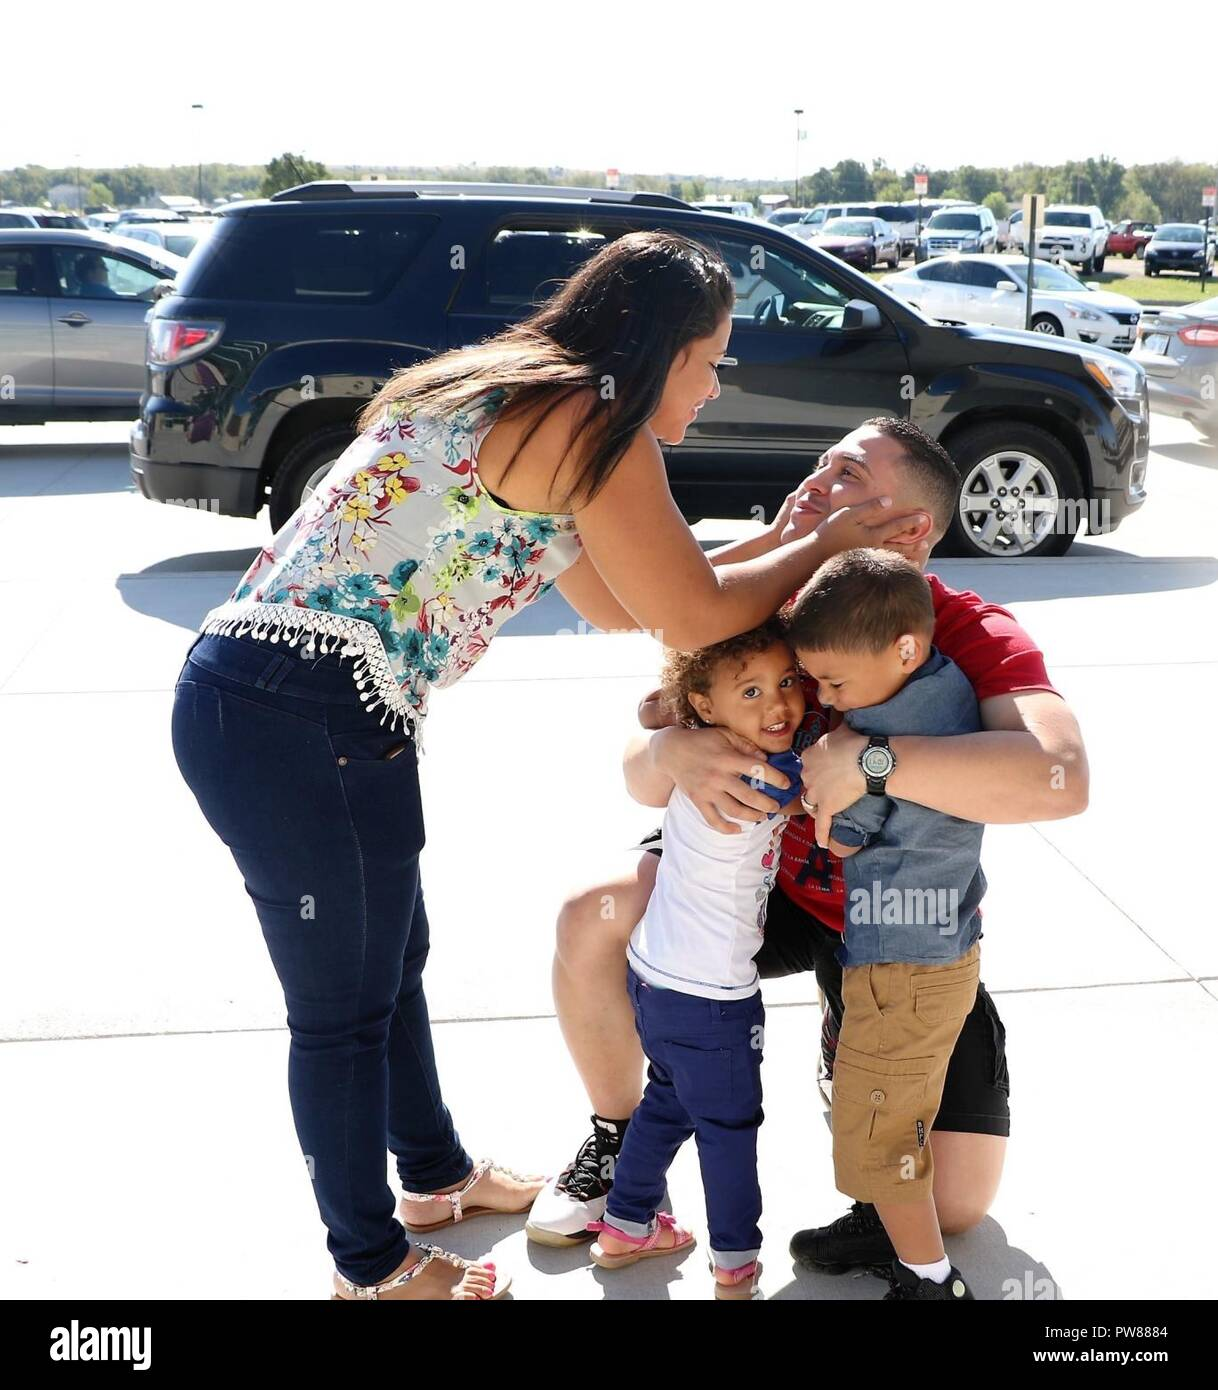 First Lieutenant Carlos Romero, disbursement officer with the 9th Financial Management Sustainment Unit, Special Troops Battalion, 1st Infantry Division Sustainment Brigade, reunites with his children, Adriel (center) and Thais Romero, and wife, Wendelyn Mendez-Maldonado, at Manhattan Regional Airport, Manhattan, Kansas, after returning from a nine-month deployment to Honduras on Sep. 28. Romero's family had also just returned from Puerto Rico shortly after Hurricane Maria devastated the island. (Sgt. 1st Class Victor Gardner, 1st Inf. Div. Sust. Bde. Public Affairs) - Stock Image